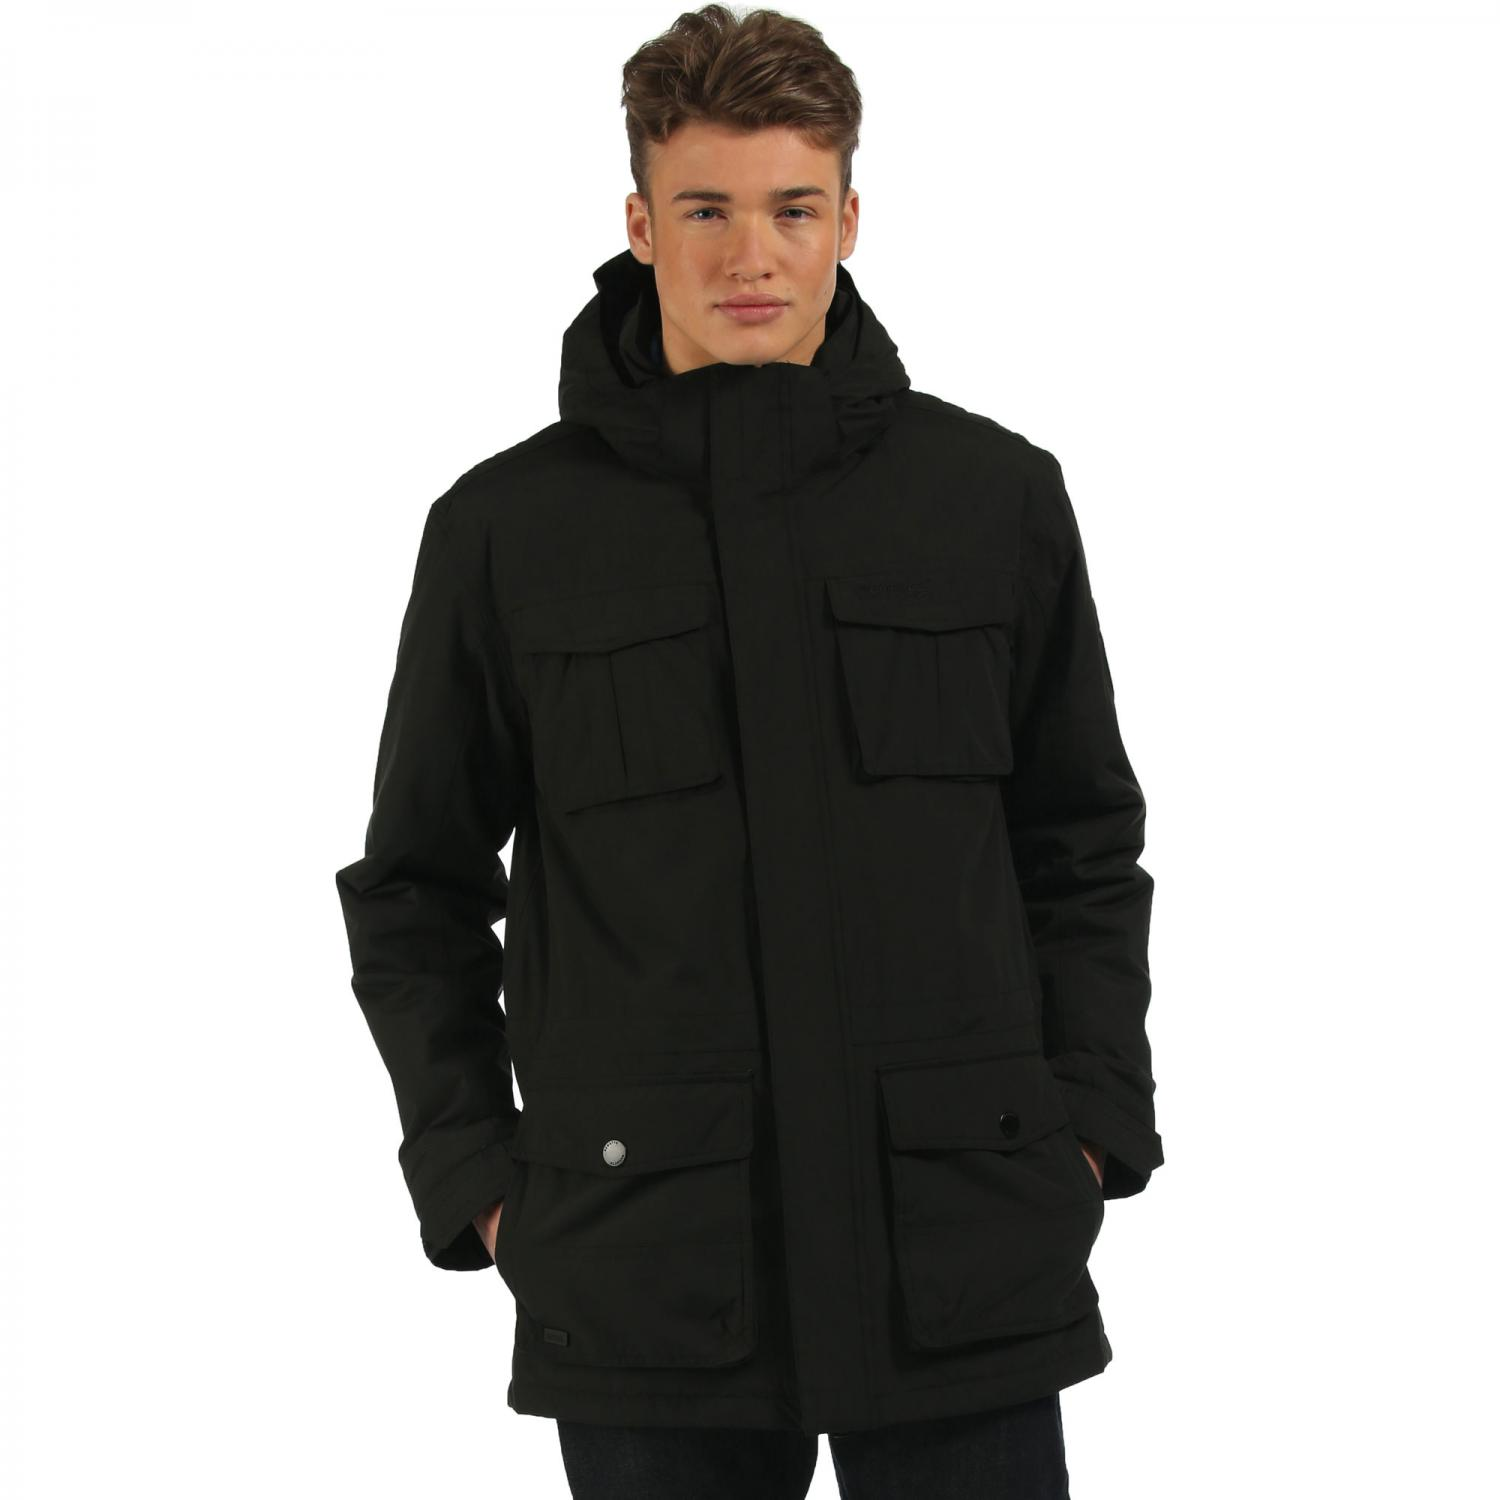 Penkar Jacket Black